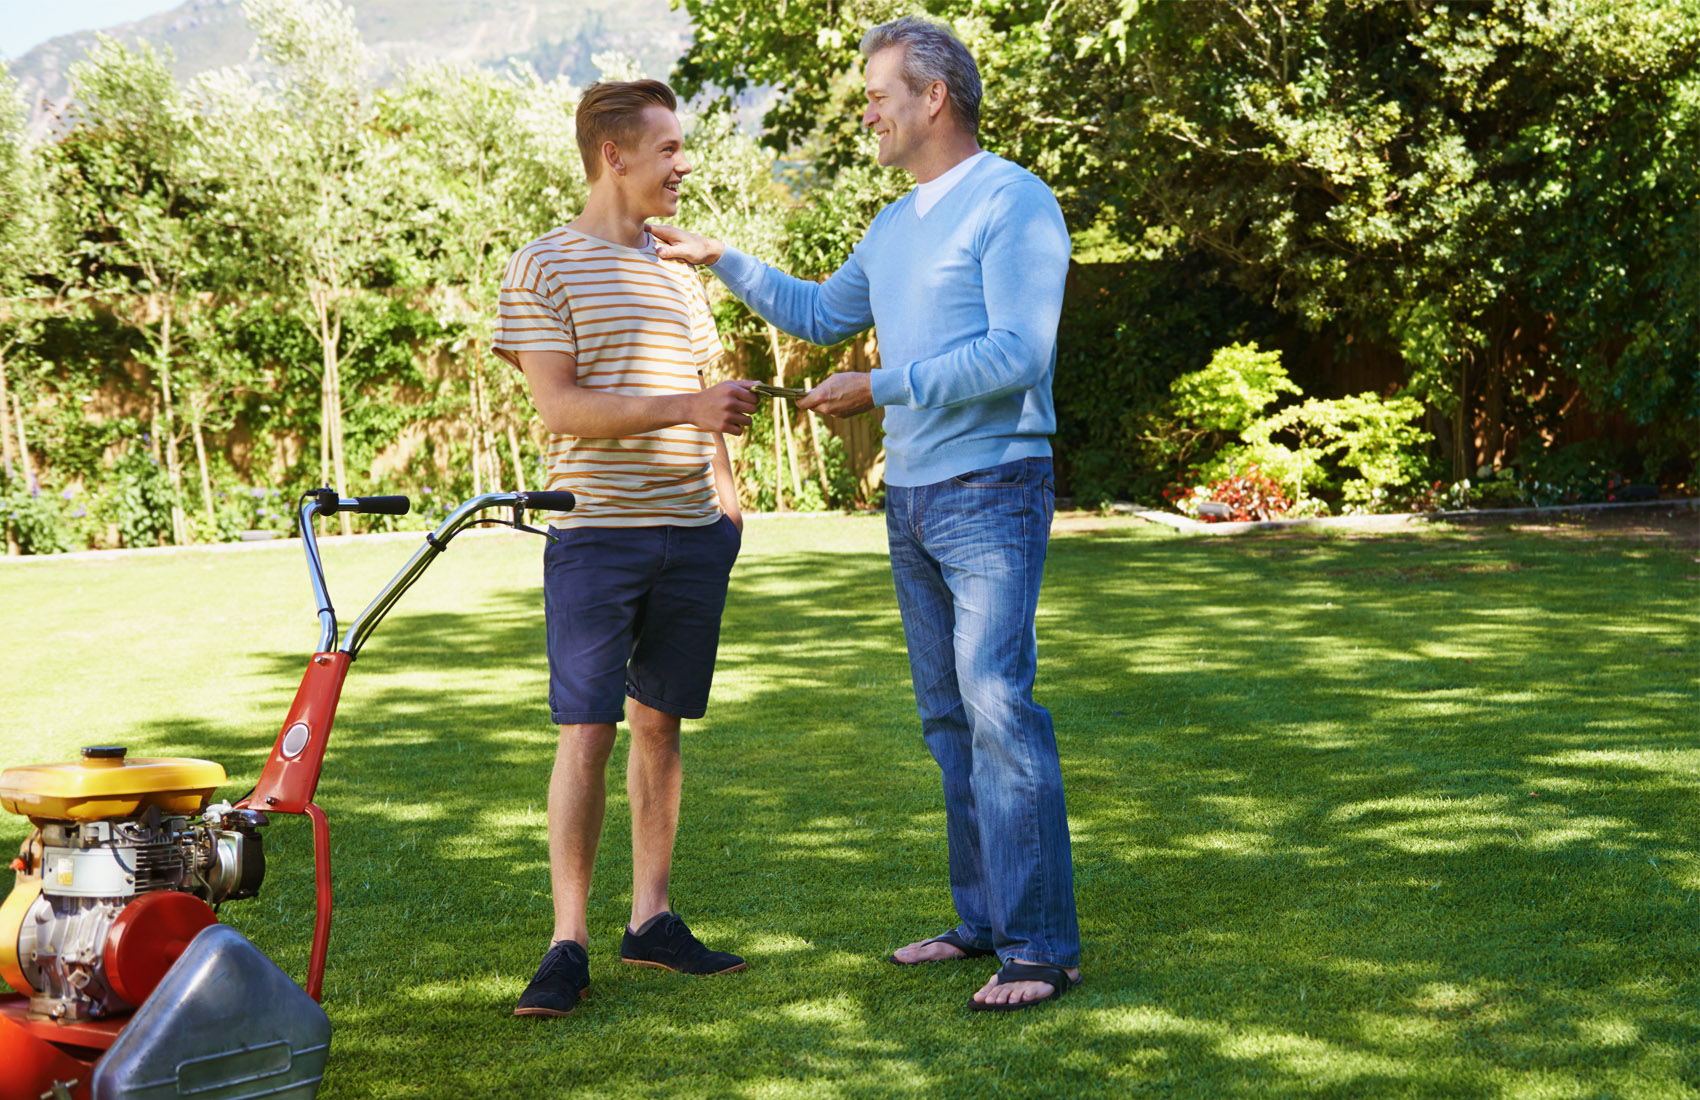 Father paying teenage son an allowance standing outside, next to a lawnmower